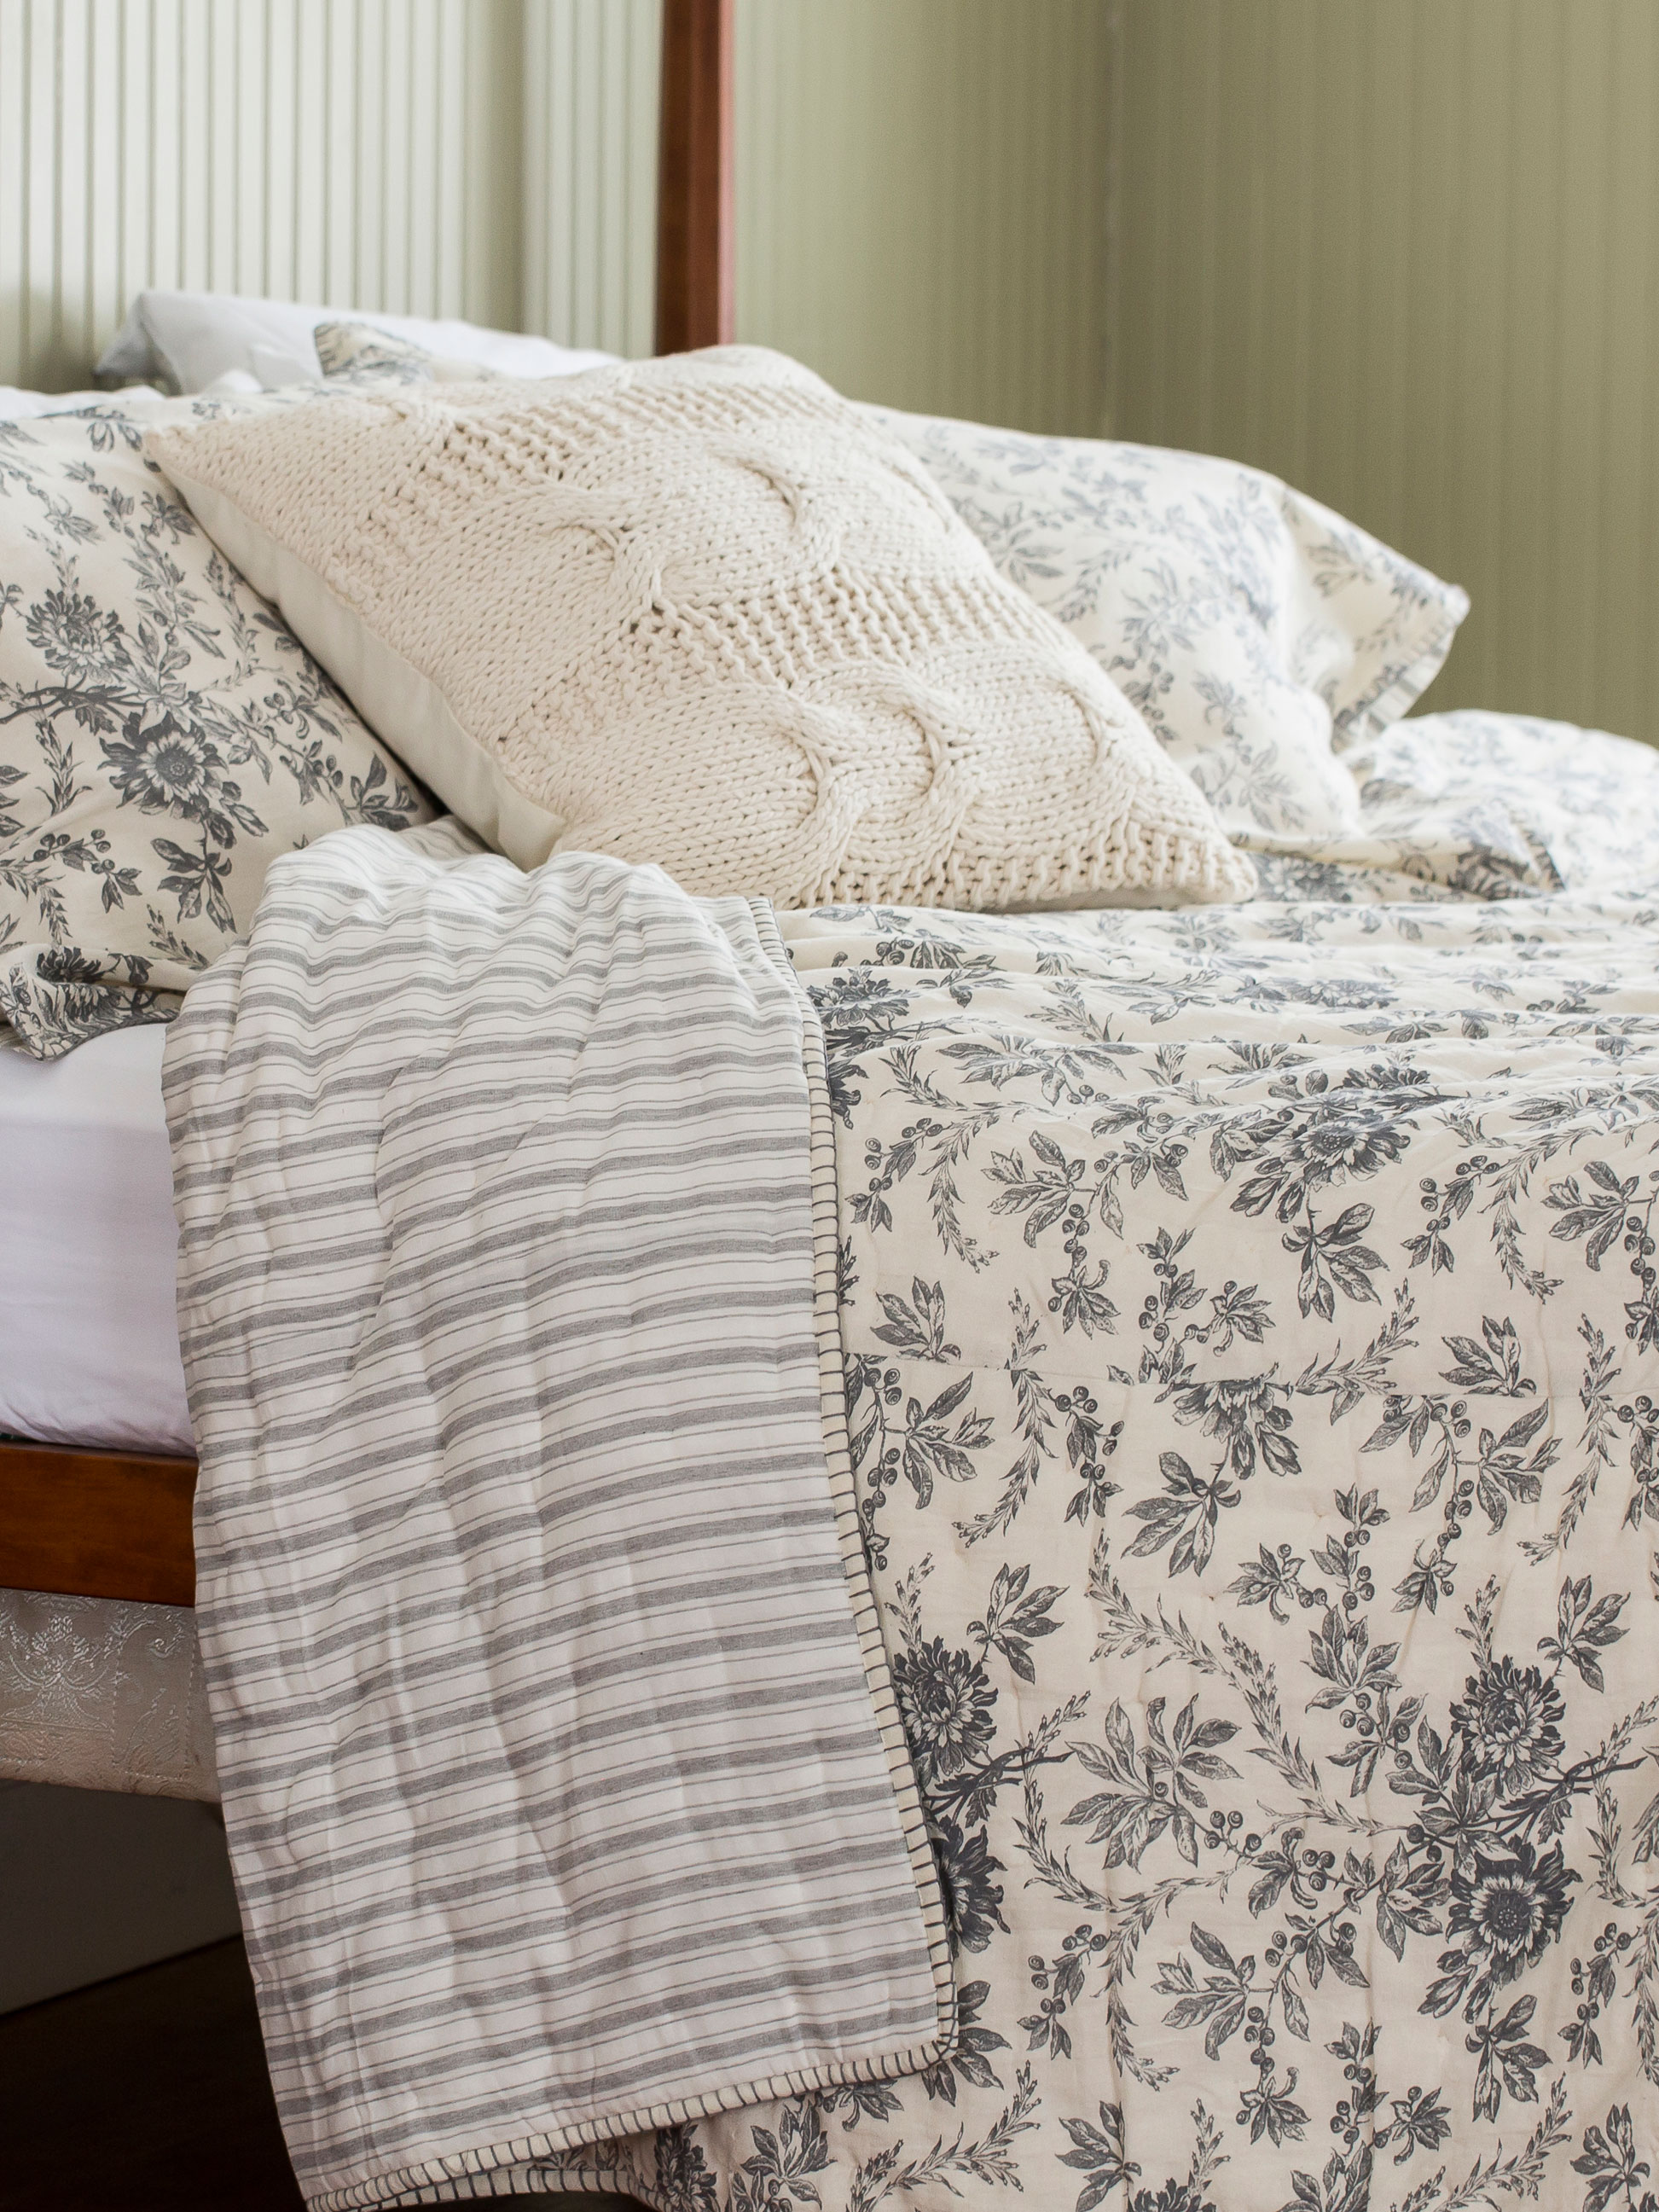 Felicity S Flowers Quilt Your Home Bedding Beautiful